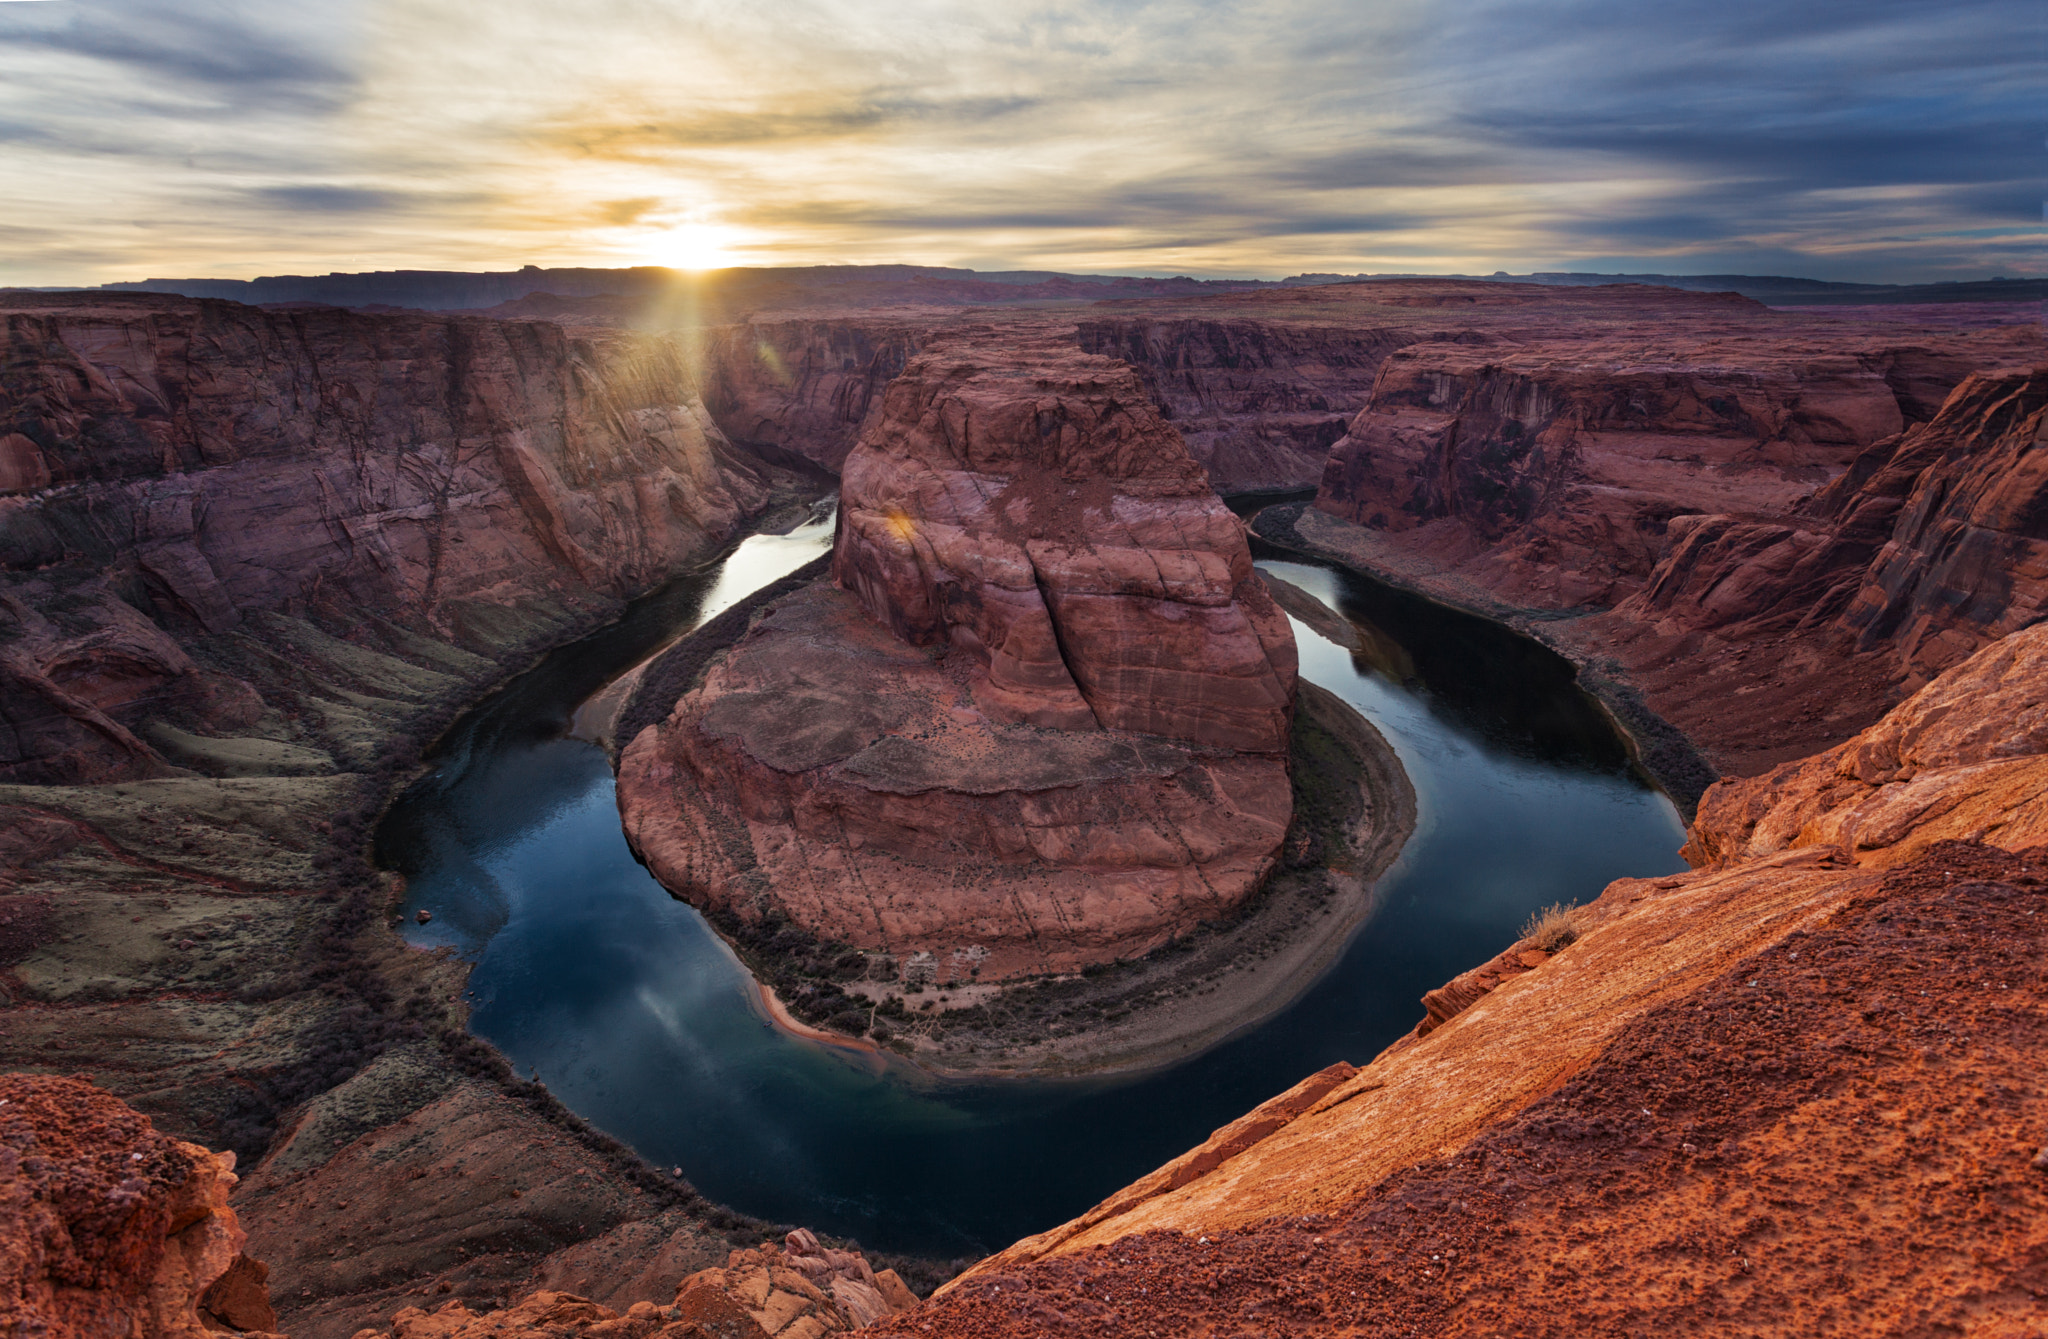 Photograph Sunset over Horseshoe Bend by Marc Perrella on 500px